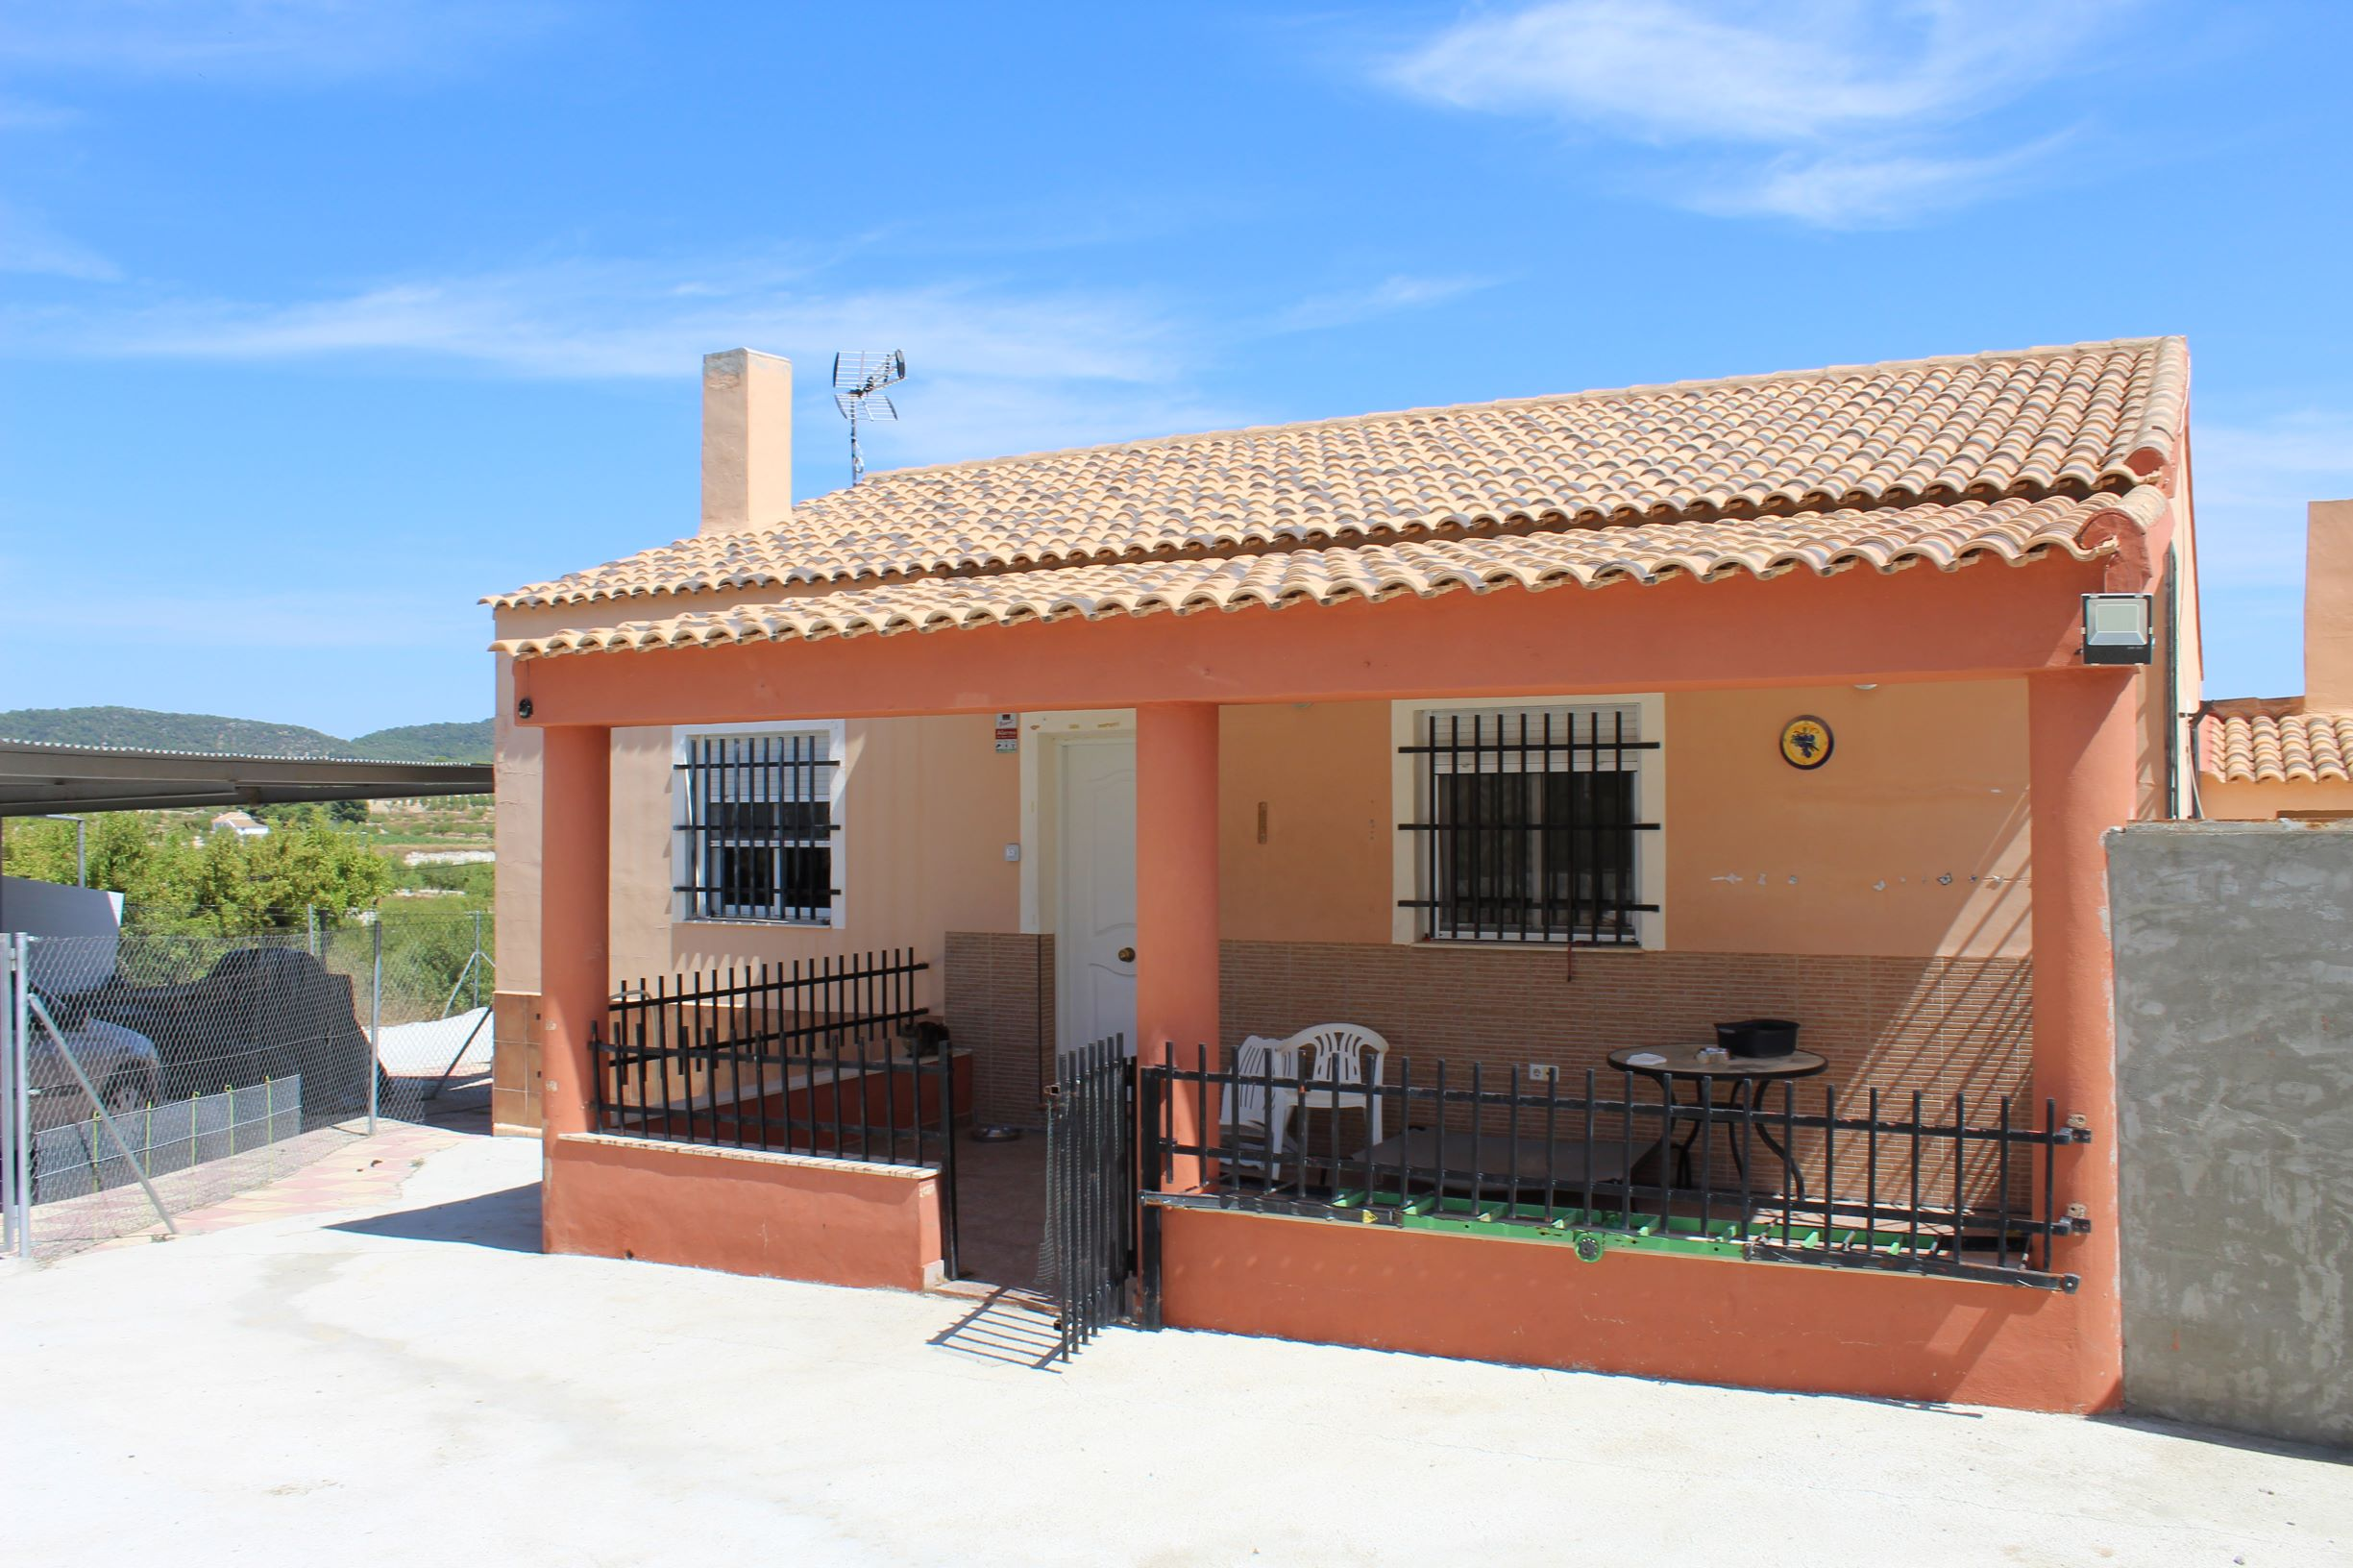 THREE BEDROOM HOUSE FOR SALE IN BULLAS